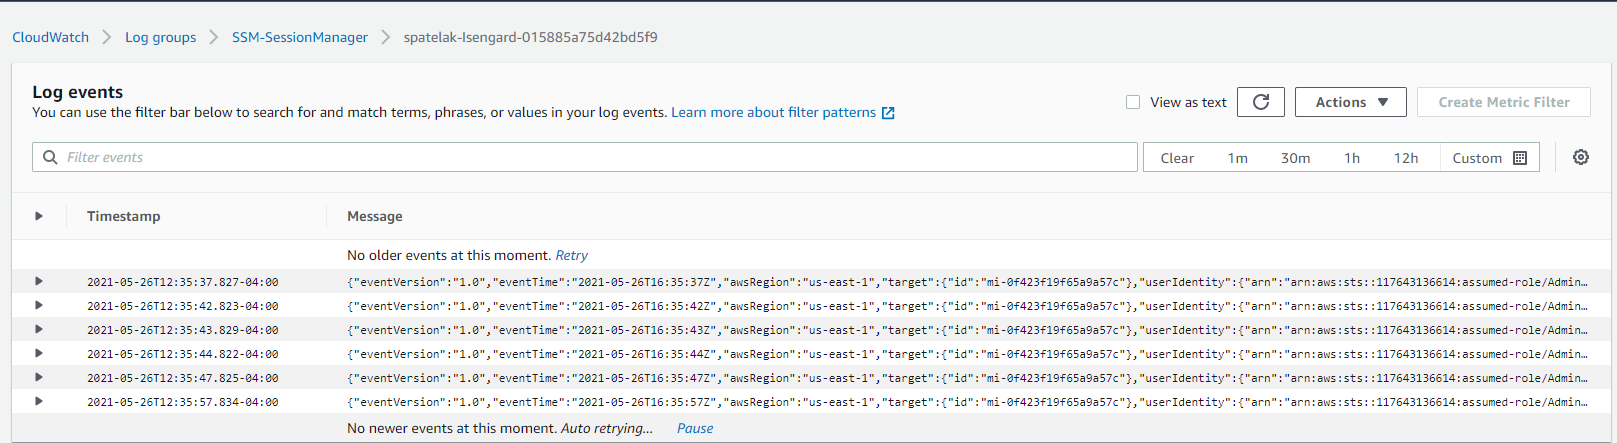 Figure 2. CloudWatch log events for session activity via Session Manager